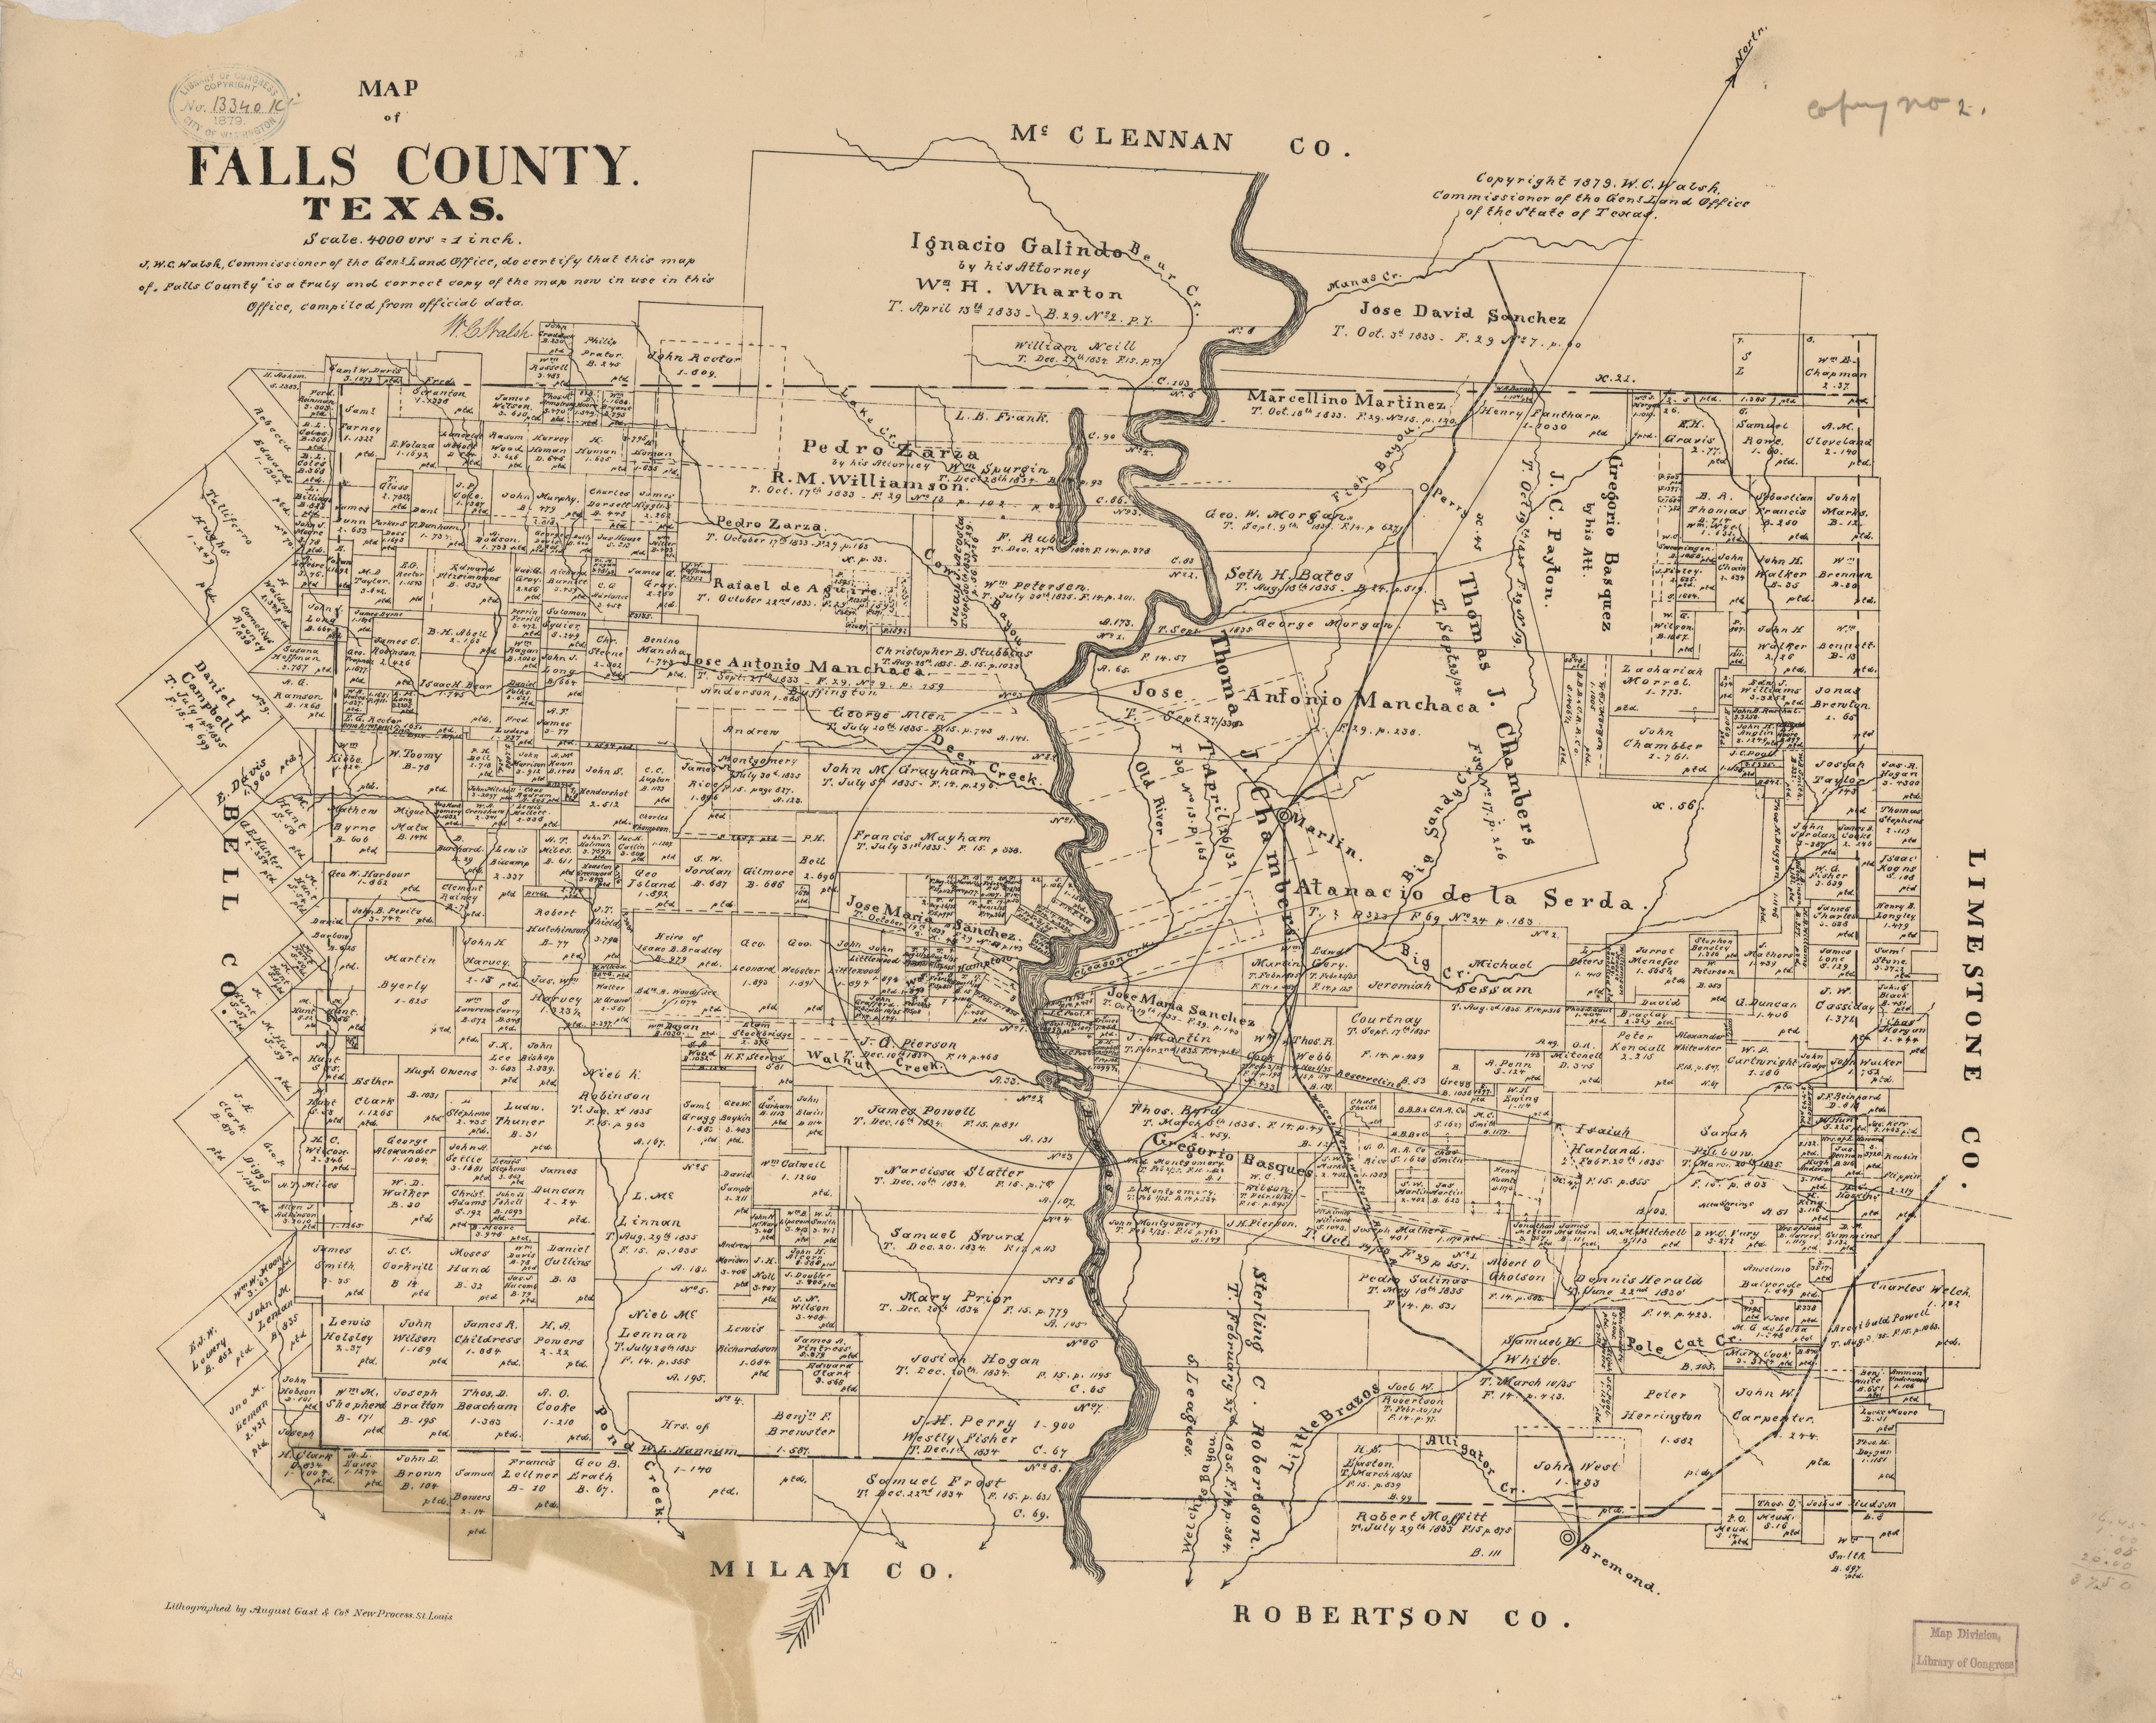 File:map Of Falls County, Texas. Loc 2012591101 - Wikimedia Commons - Falls County Texas Map